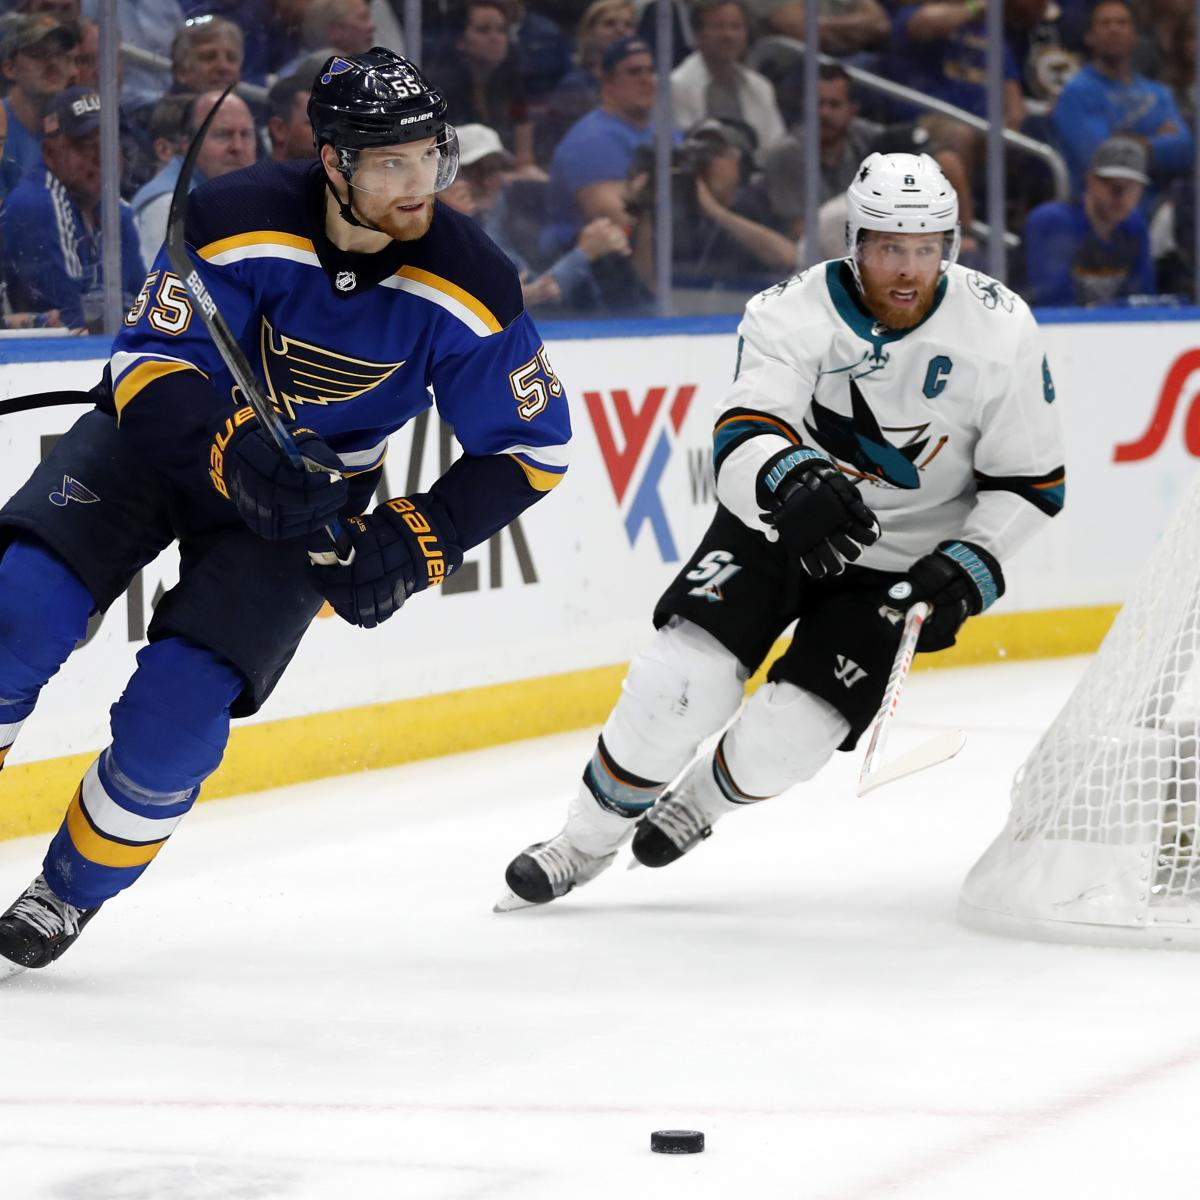 NHL Playoffs 2019: Game 5 TV Schedule And Odds For Sharks